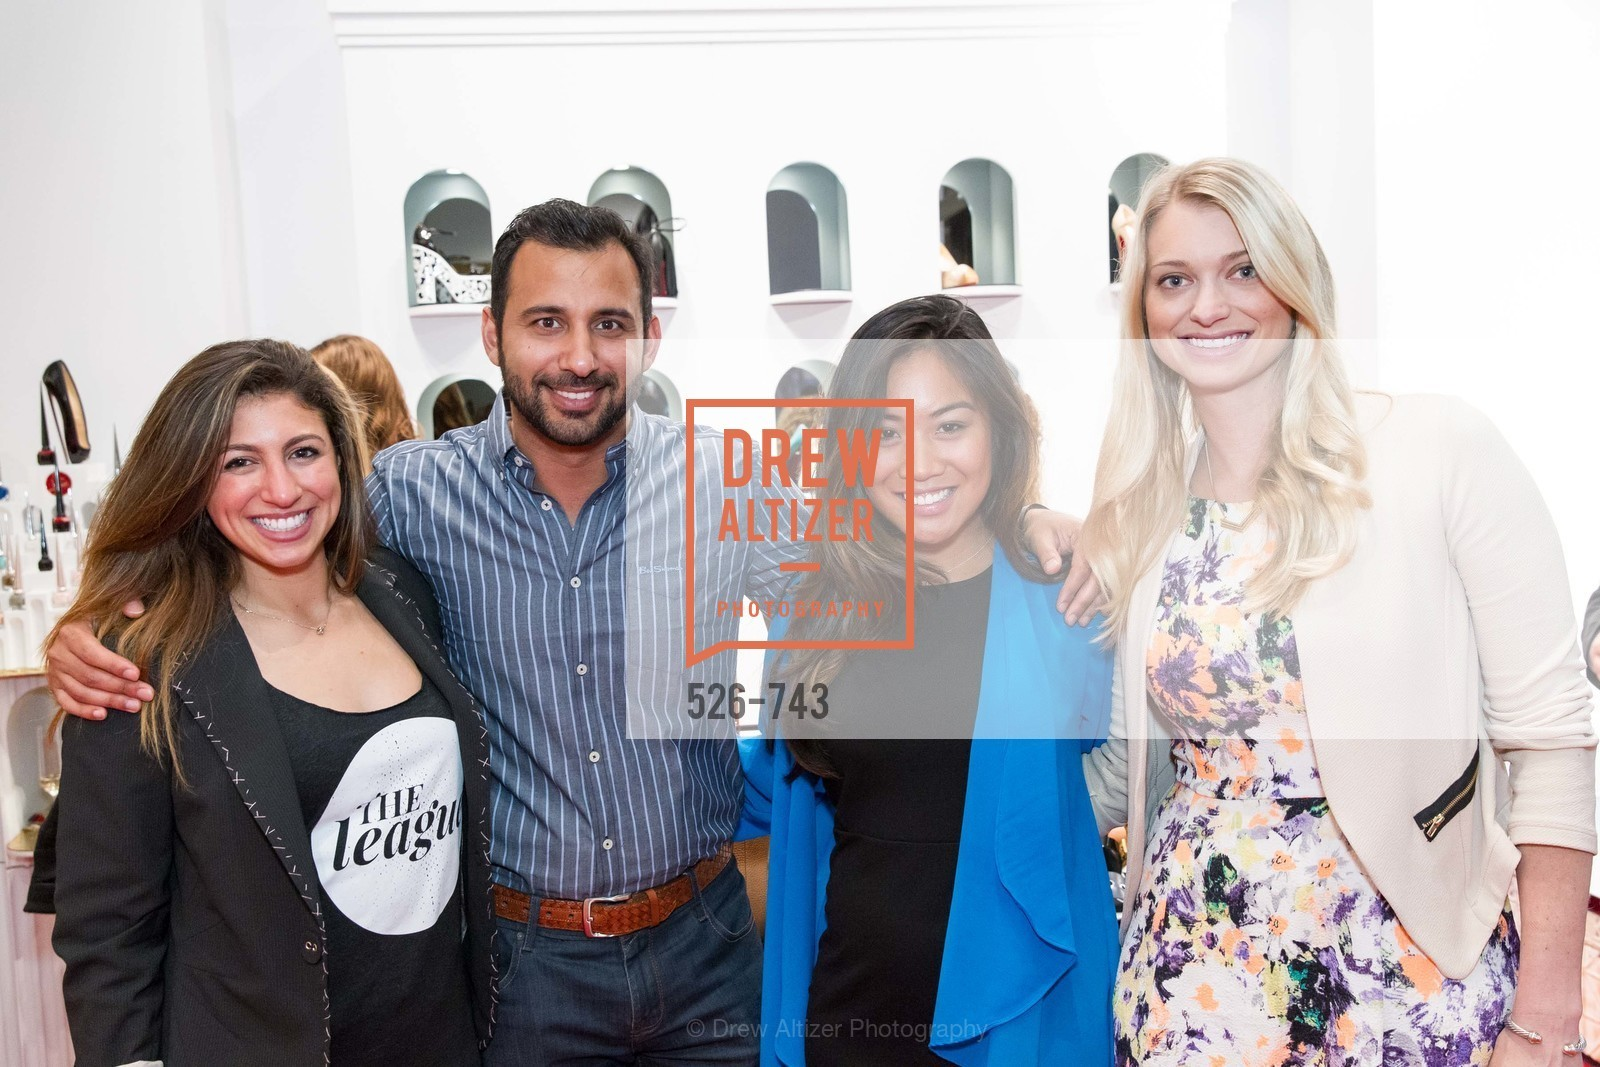 Meredith Davis, Payam Pakmanesh, Louella Aquino, Amanda Bradford, CHRISTIAN LOUBOUTIN Anniversary Party, US, May 21st, 2015,Drew Altizer, Drew Altizer Photography, full-service agency, private events, San Francisco photographer, photographer california